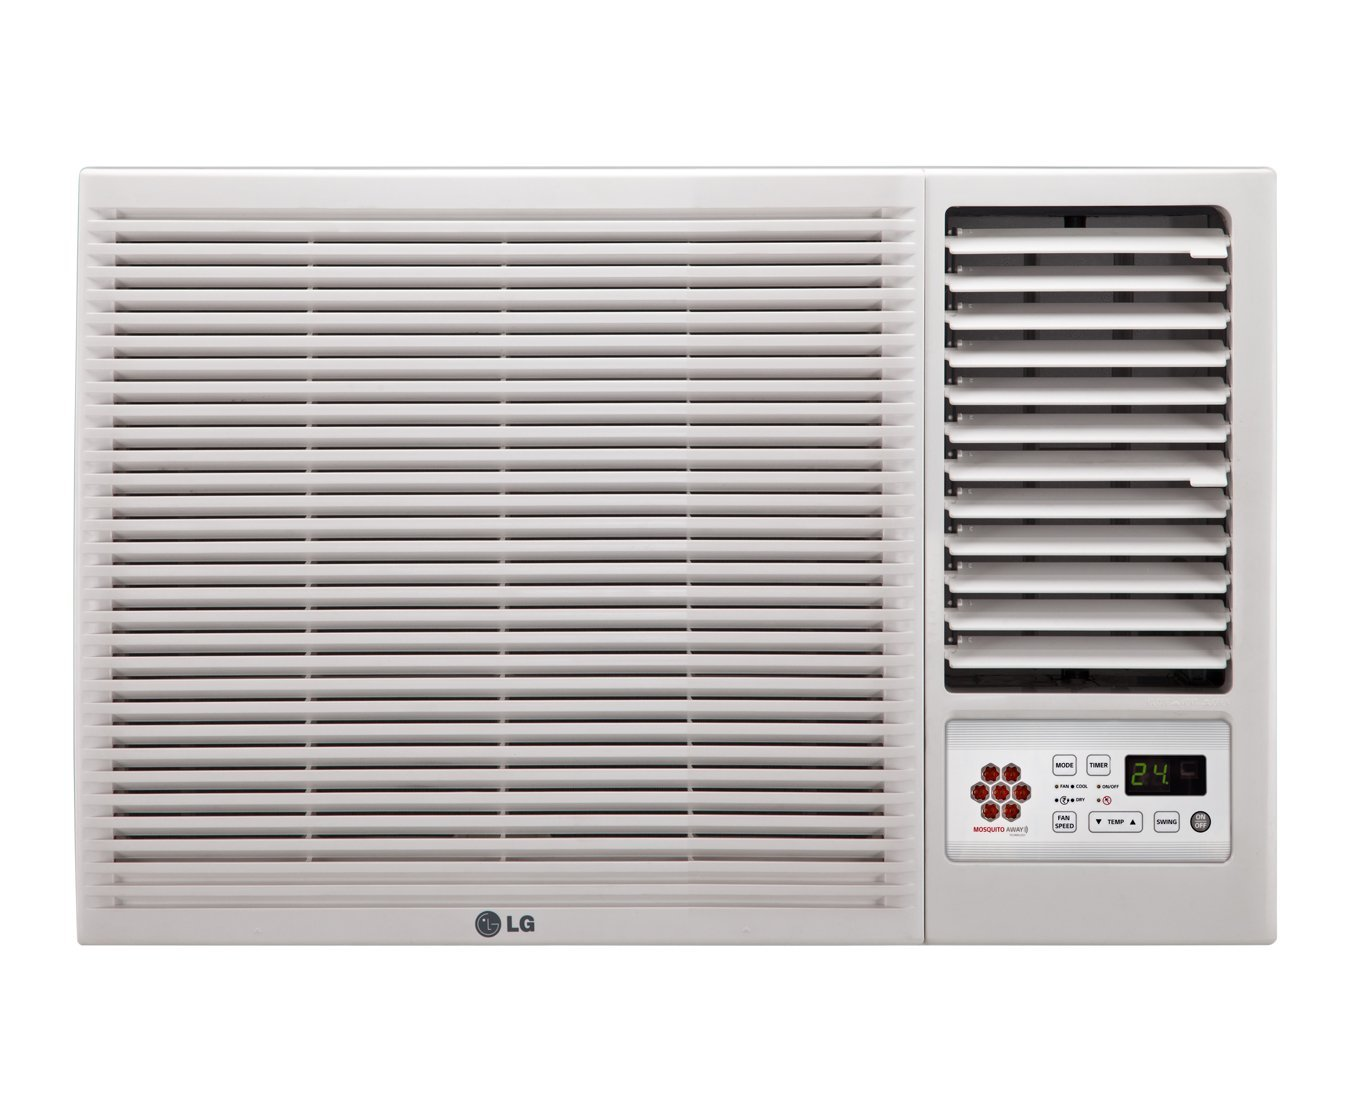 Lg Window Ac Dealers in Dumka Jharkhand Address Contact number #5A4D4C